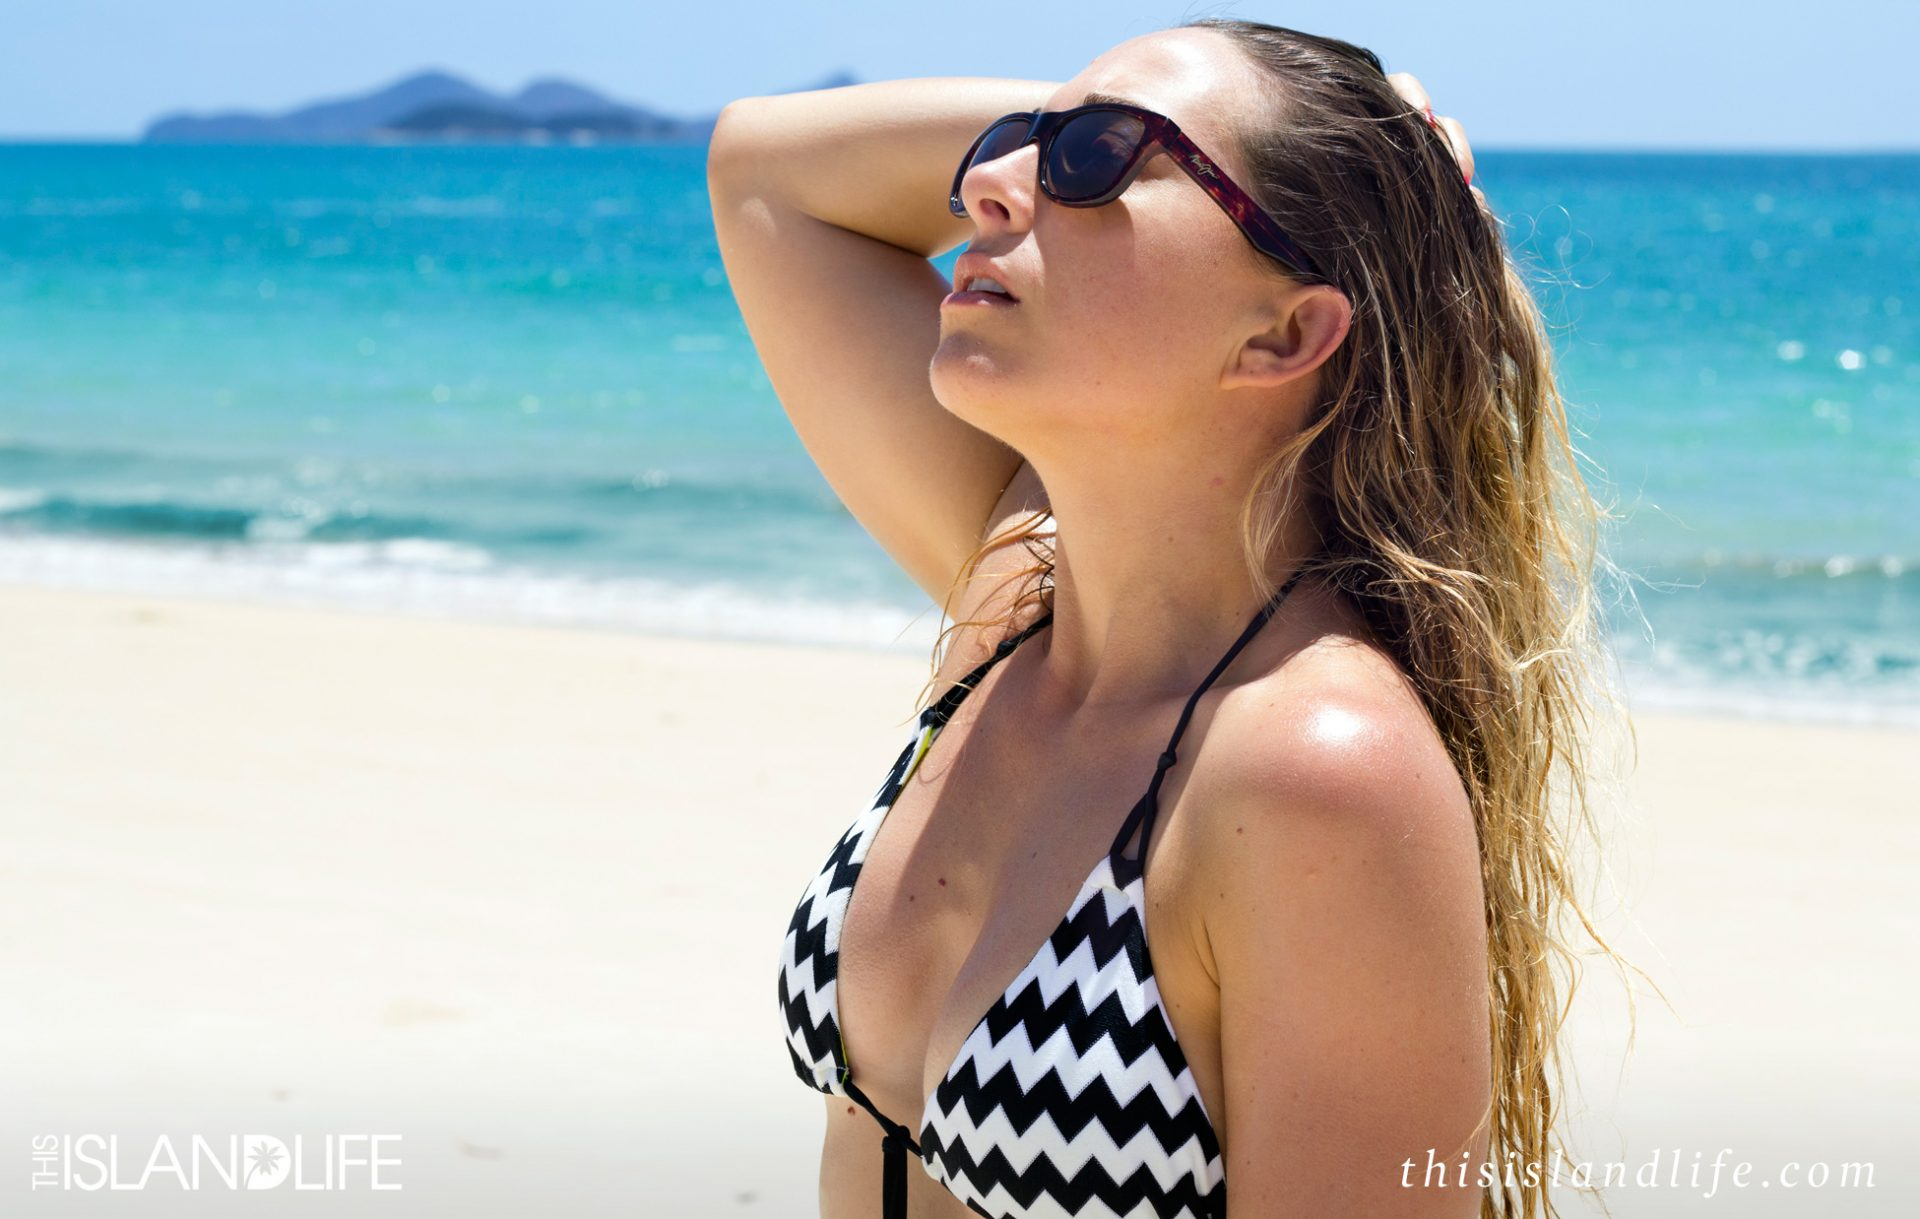 Bikini Love: Monochromatic paradise by Seafolly